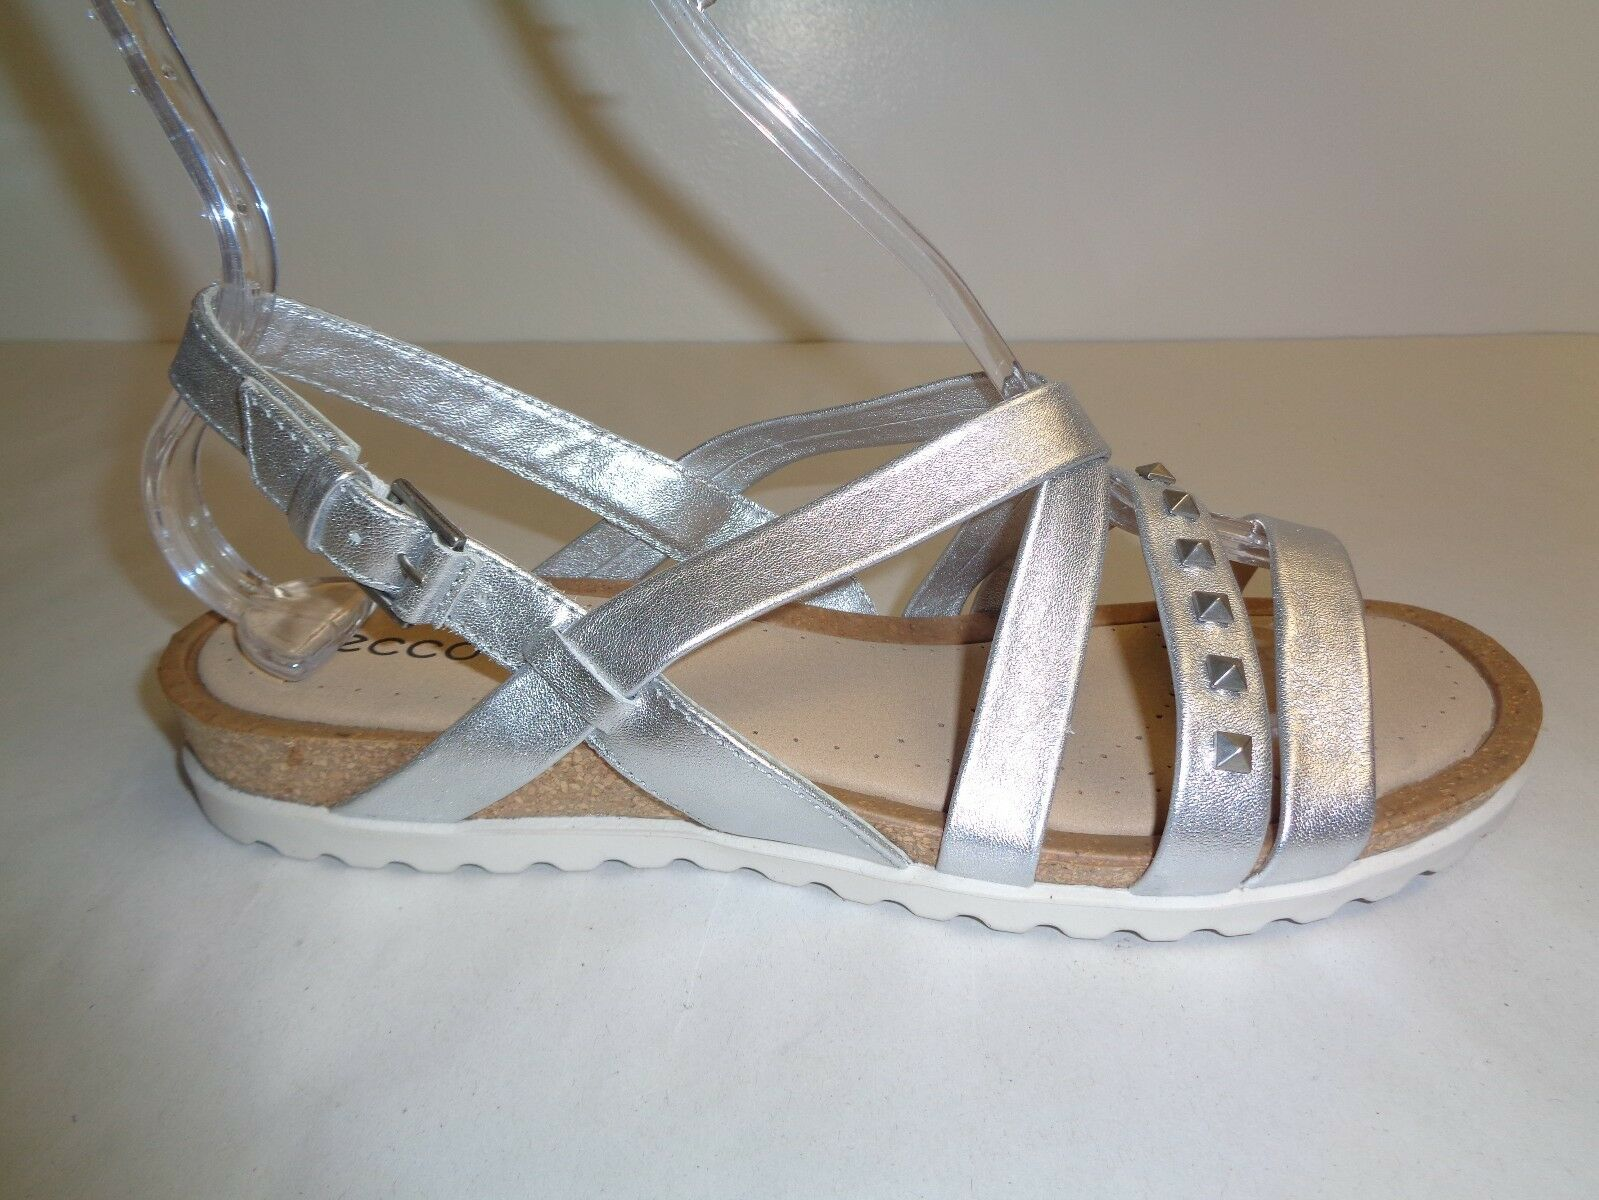 Ecco Taille 7 to 7.5 DAGMAR argent Leather Cross Dress Sandals New femmes chaussures